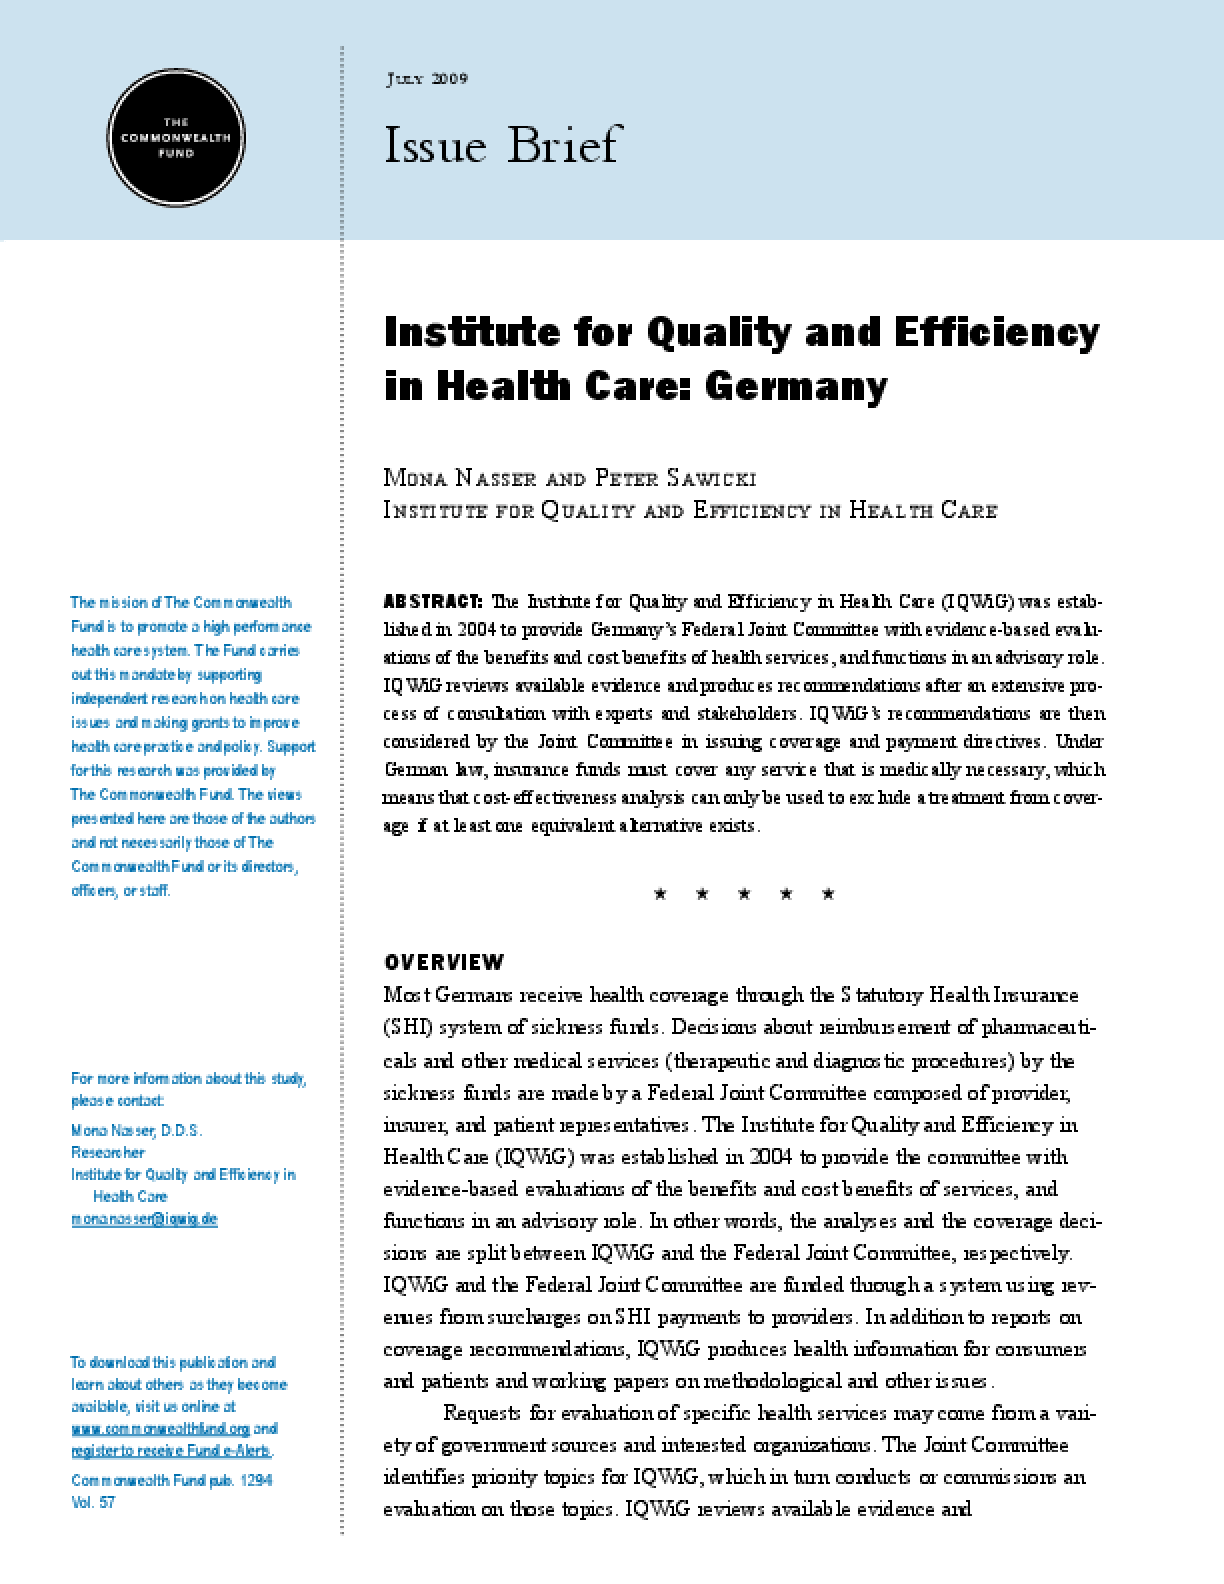 Institute for Quality and Efficiency in Health Care: Germany